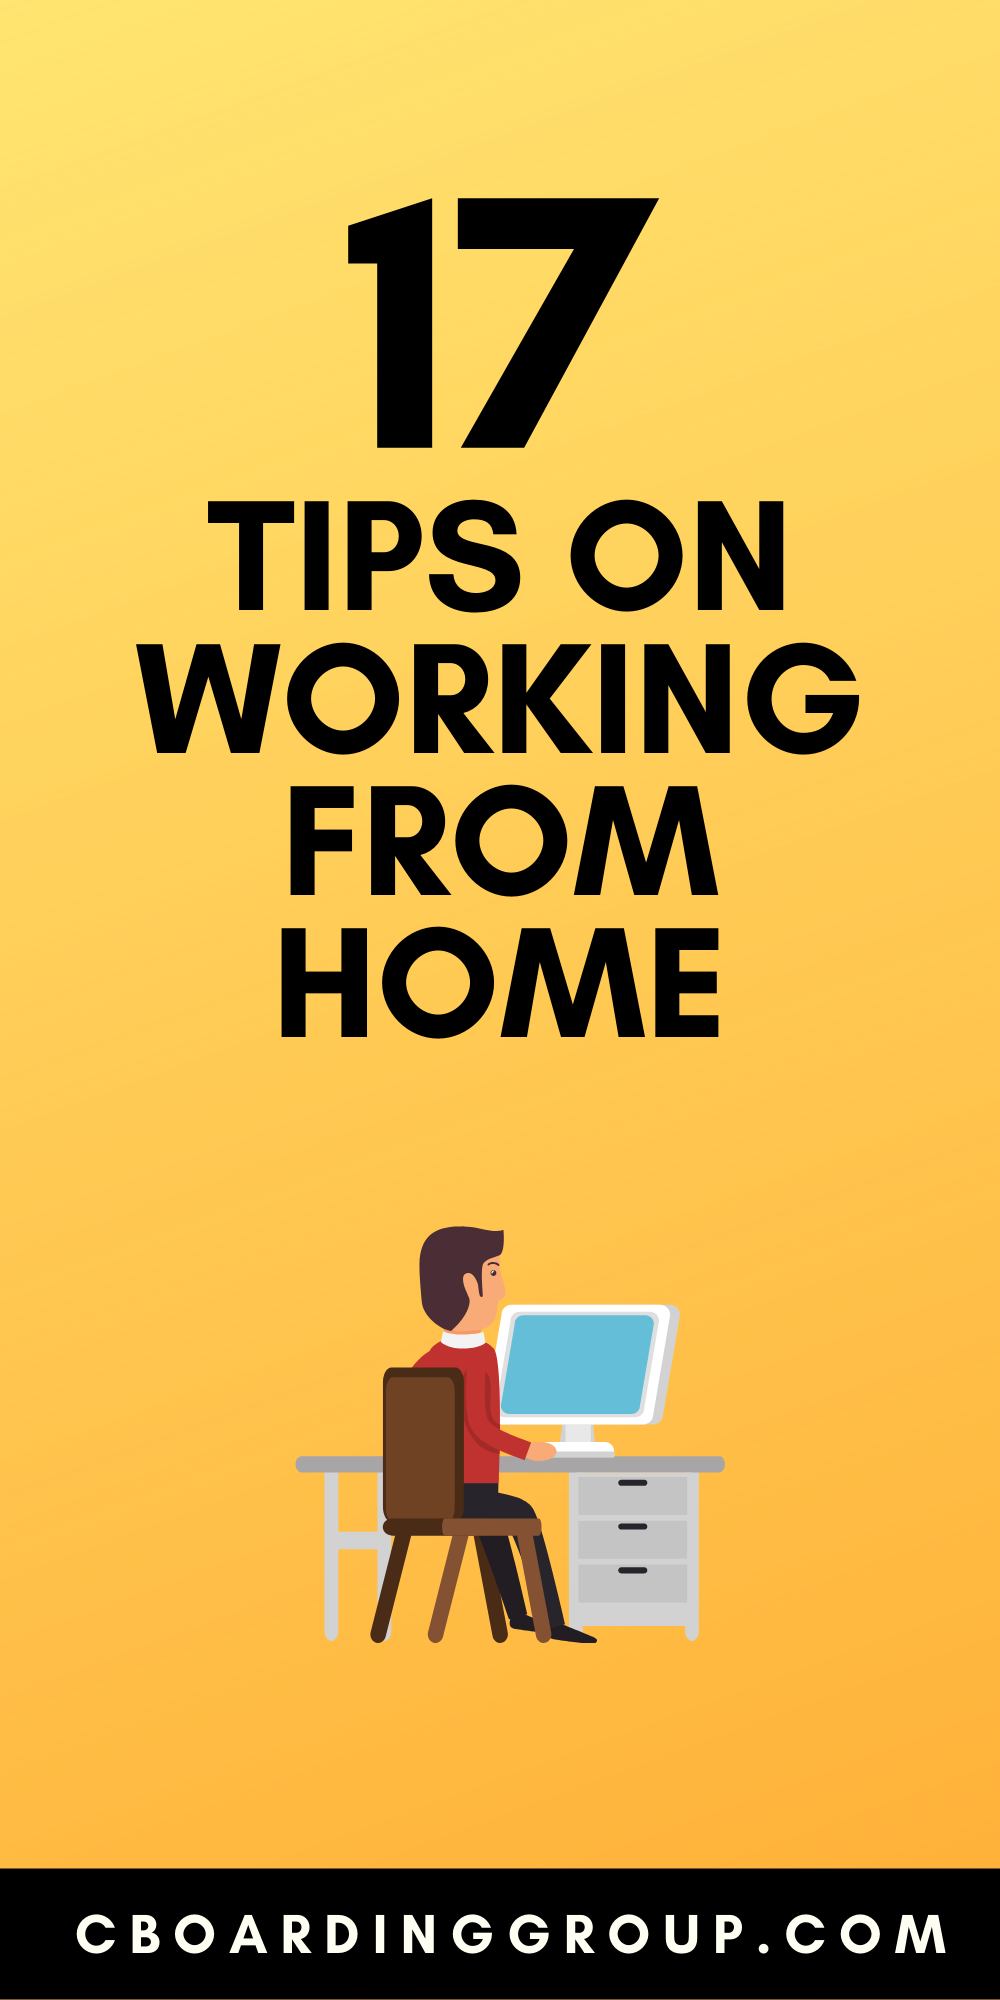 Well crud...I guess we are working from home 17 Tips on